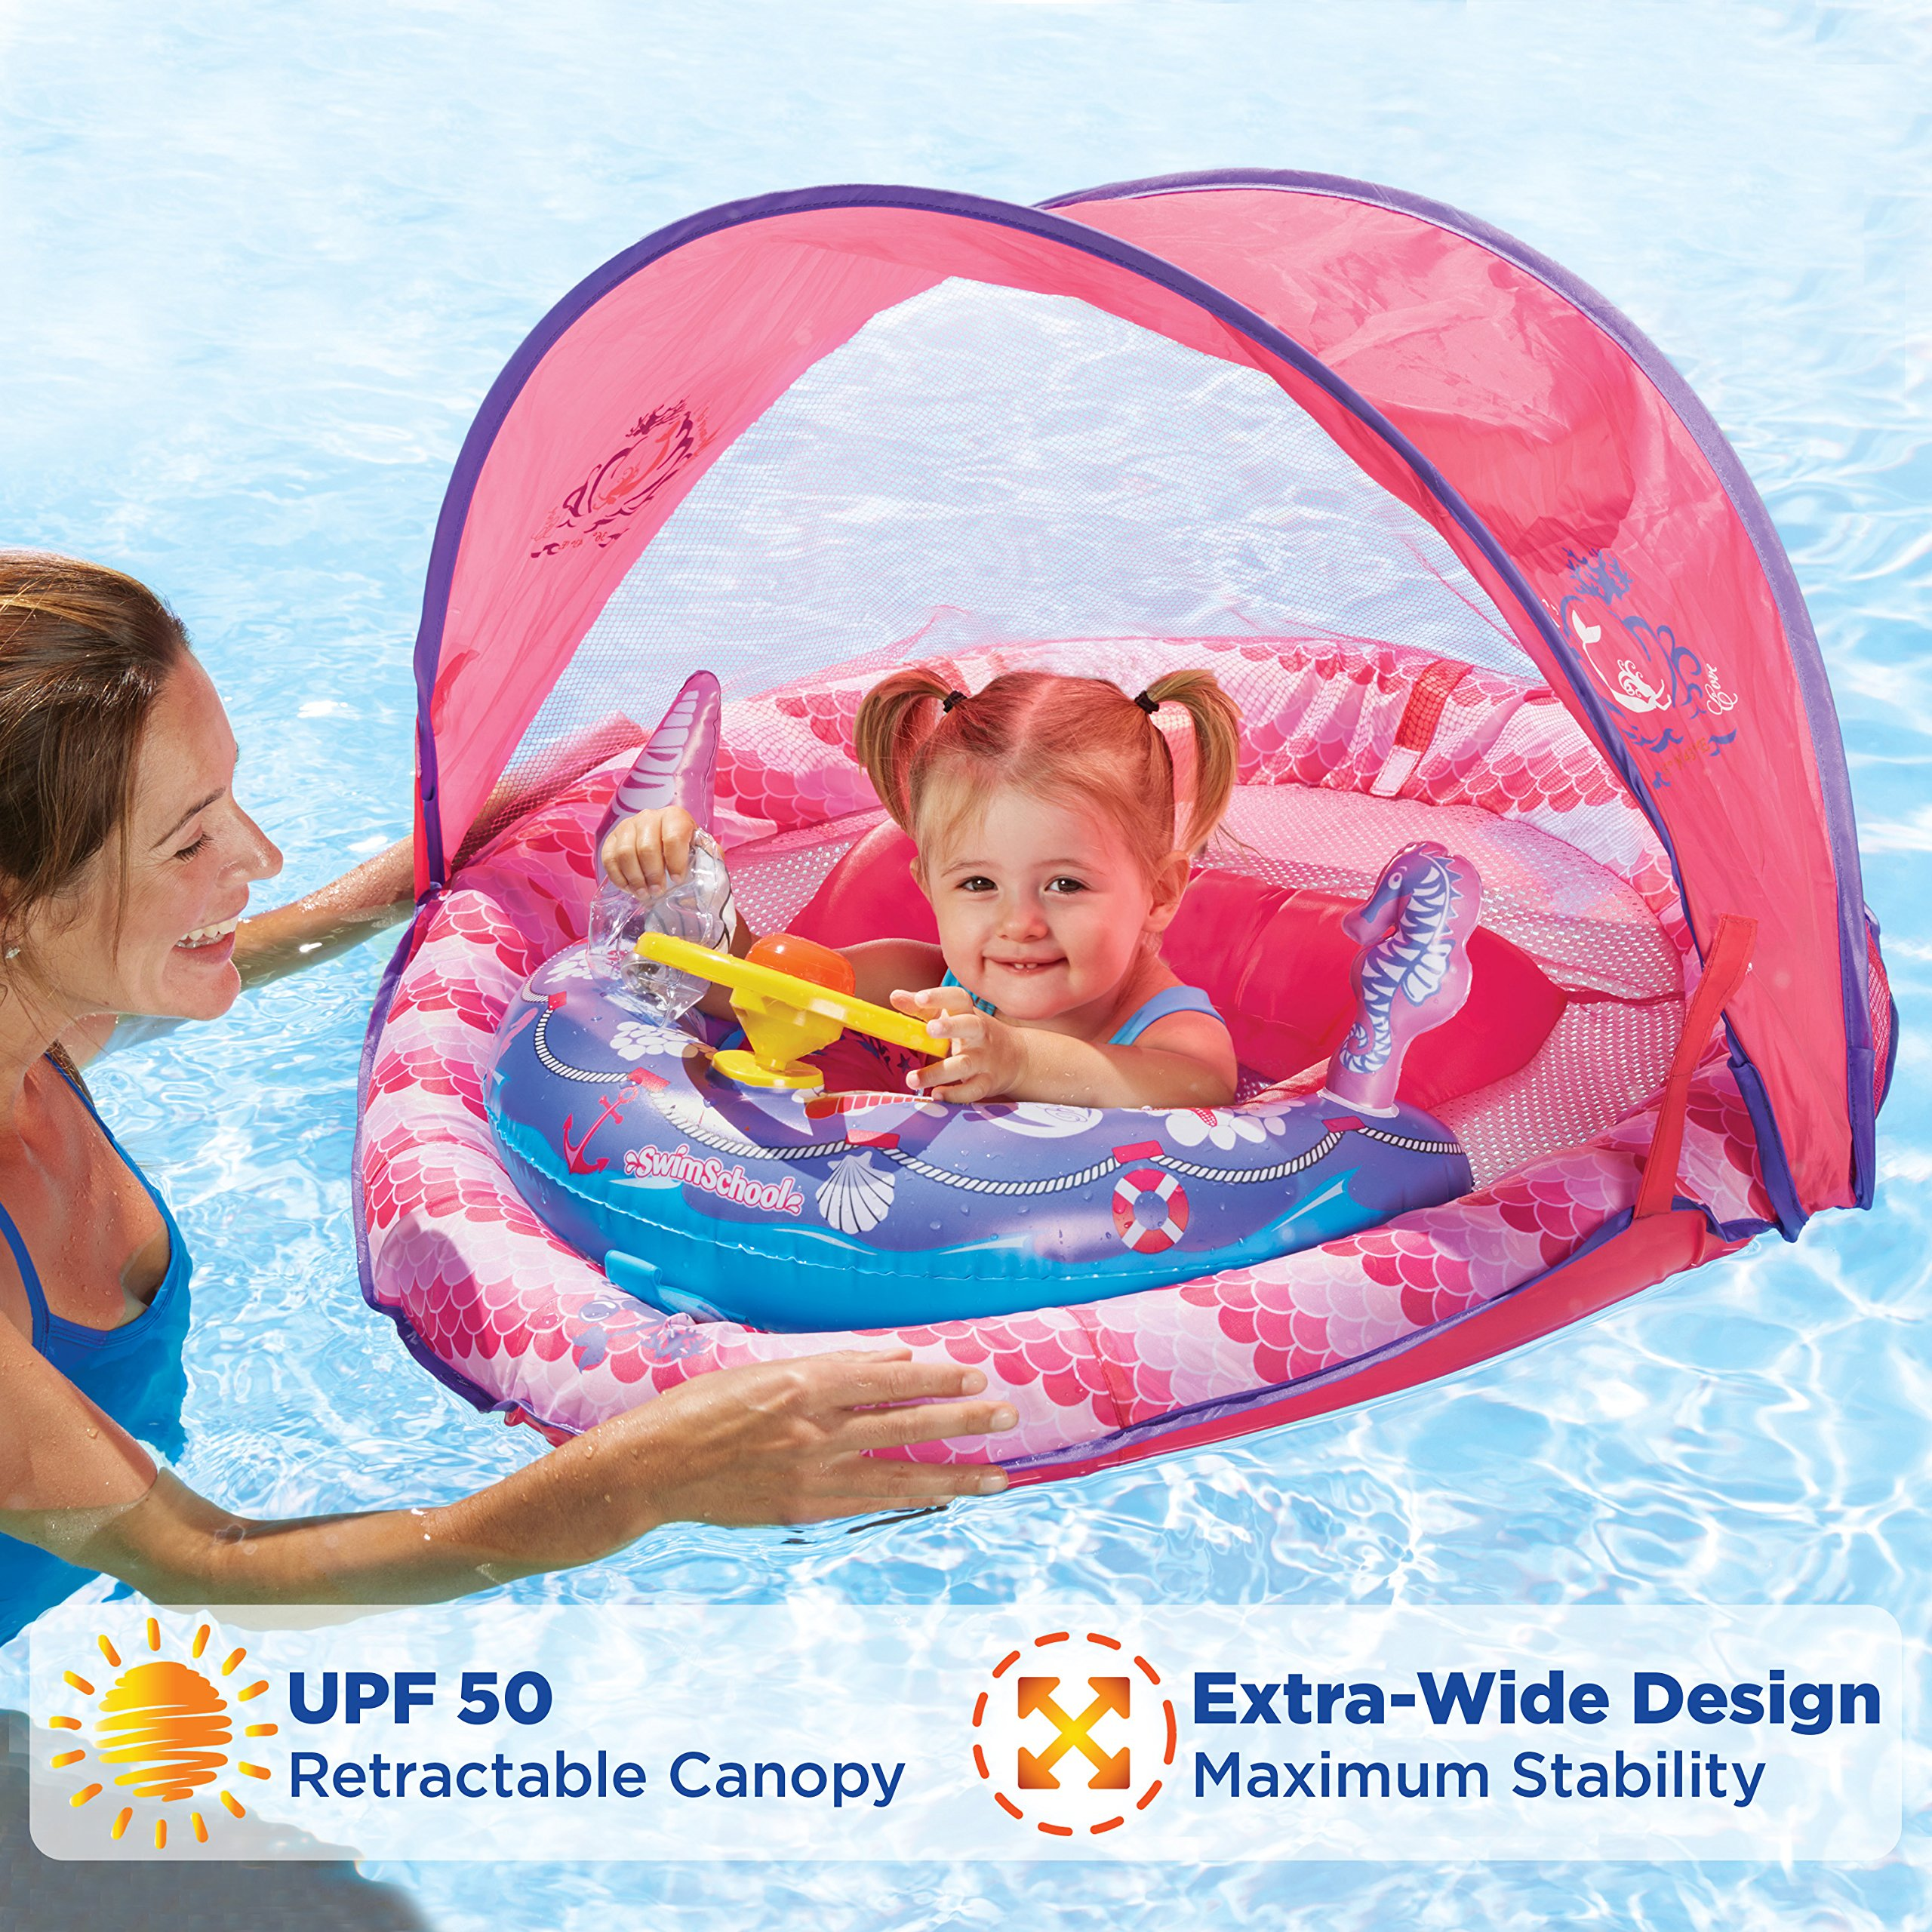 SwimSchool Lil' Mermaid Fabric  Baby Boat, Canopy, UFP50, Sound & Light Activity Center, Extra-Wide Inflatable Pool Float, 6 to 18 months, Pink